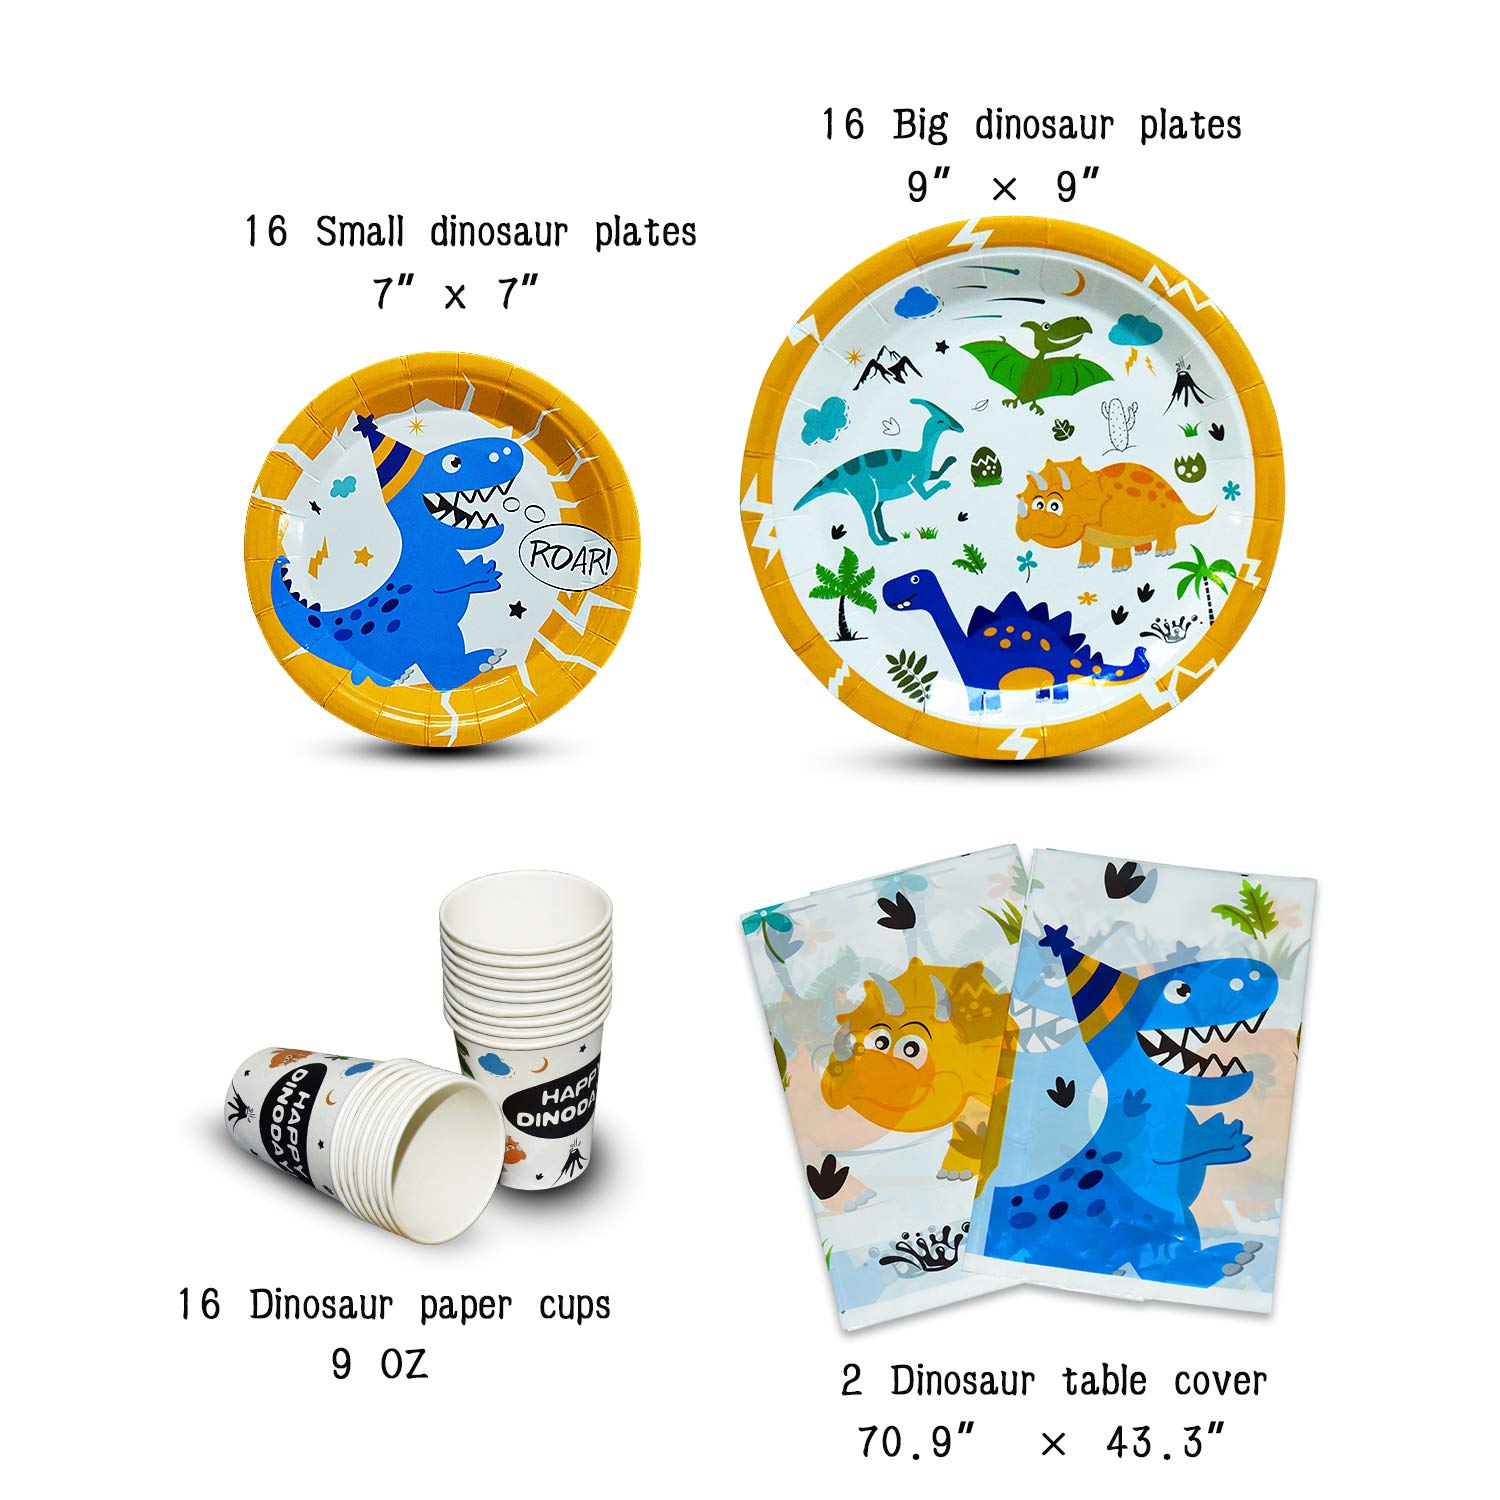 WERNNSAI Dinosaur Party Supplies Set - Dinosaur Themed Party Decoration for Boys Kids Birthday Cutlery Bag Table Cover Plates Cups Napkins Straws Utensils Banner & Balloons Serves 16 Guests 169 PCS by WERNNSAI (Image #4)